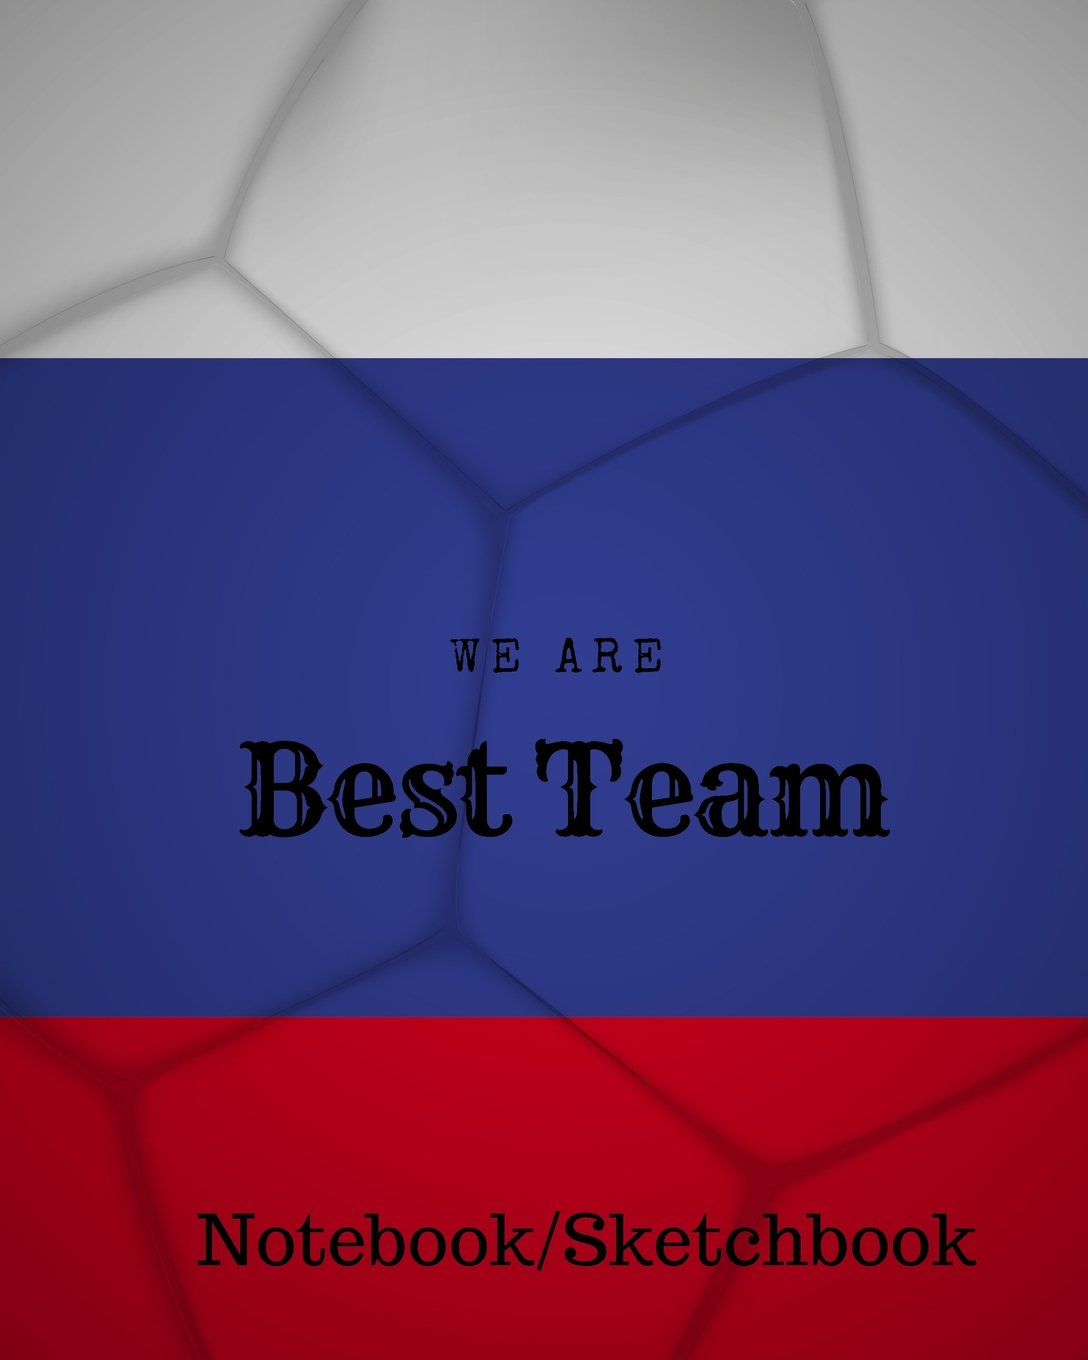 We are Best Team: Russia Football / Soccer Team 106 Pages Unlined Notebook PDF